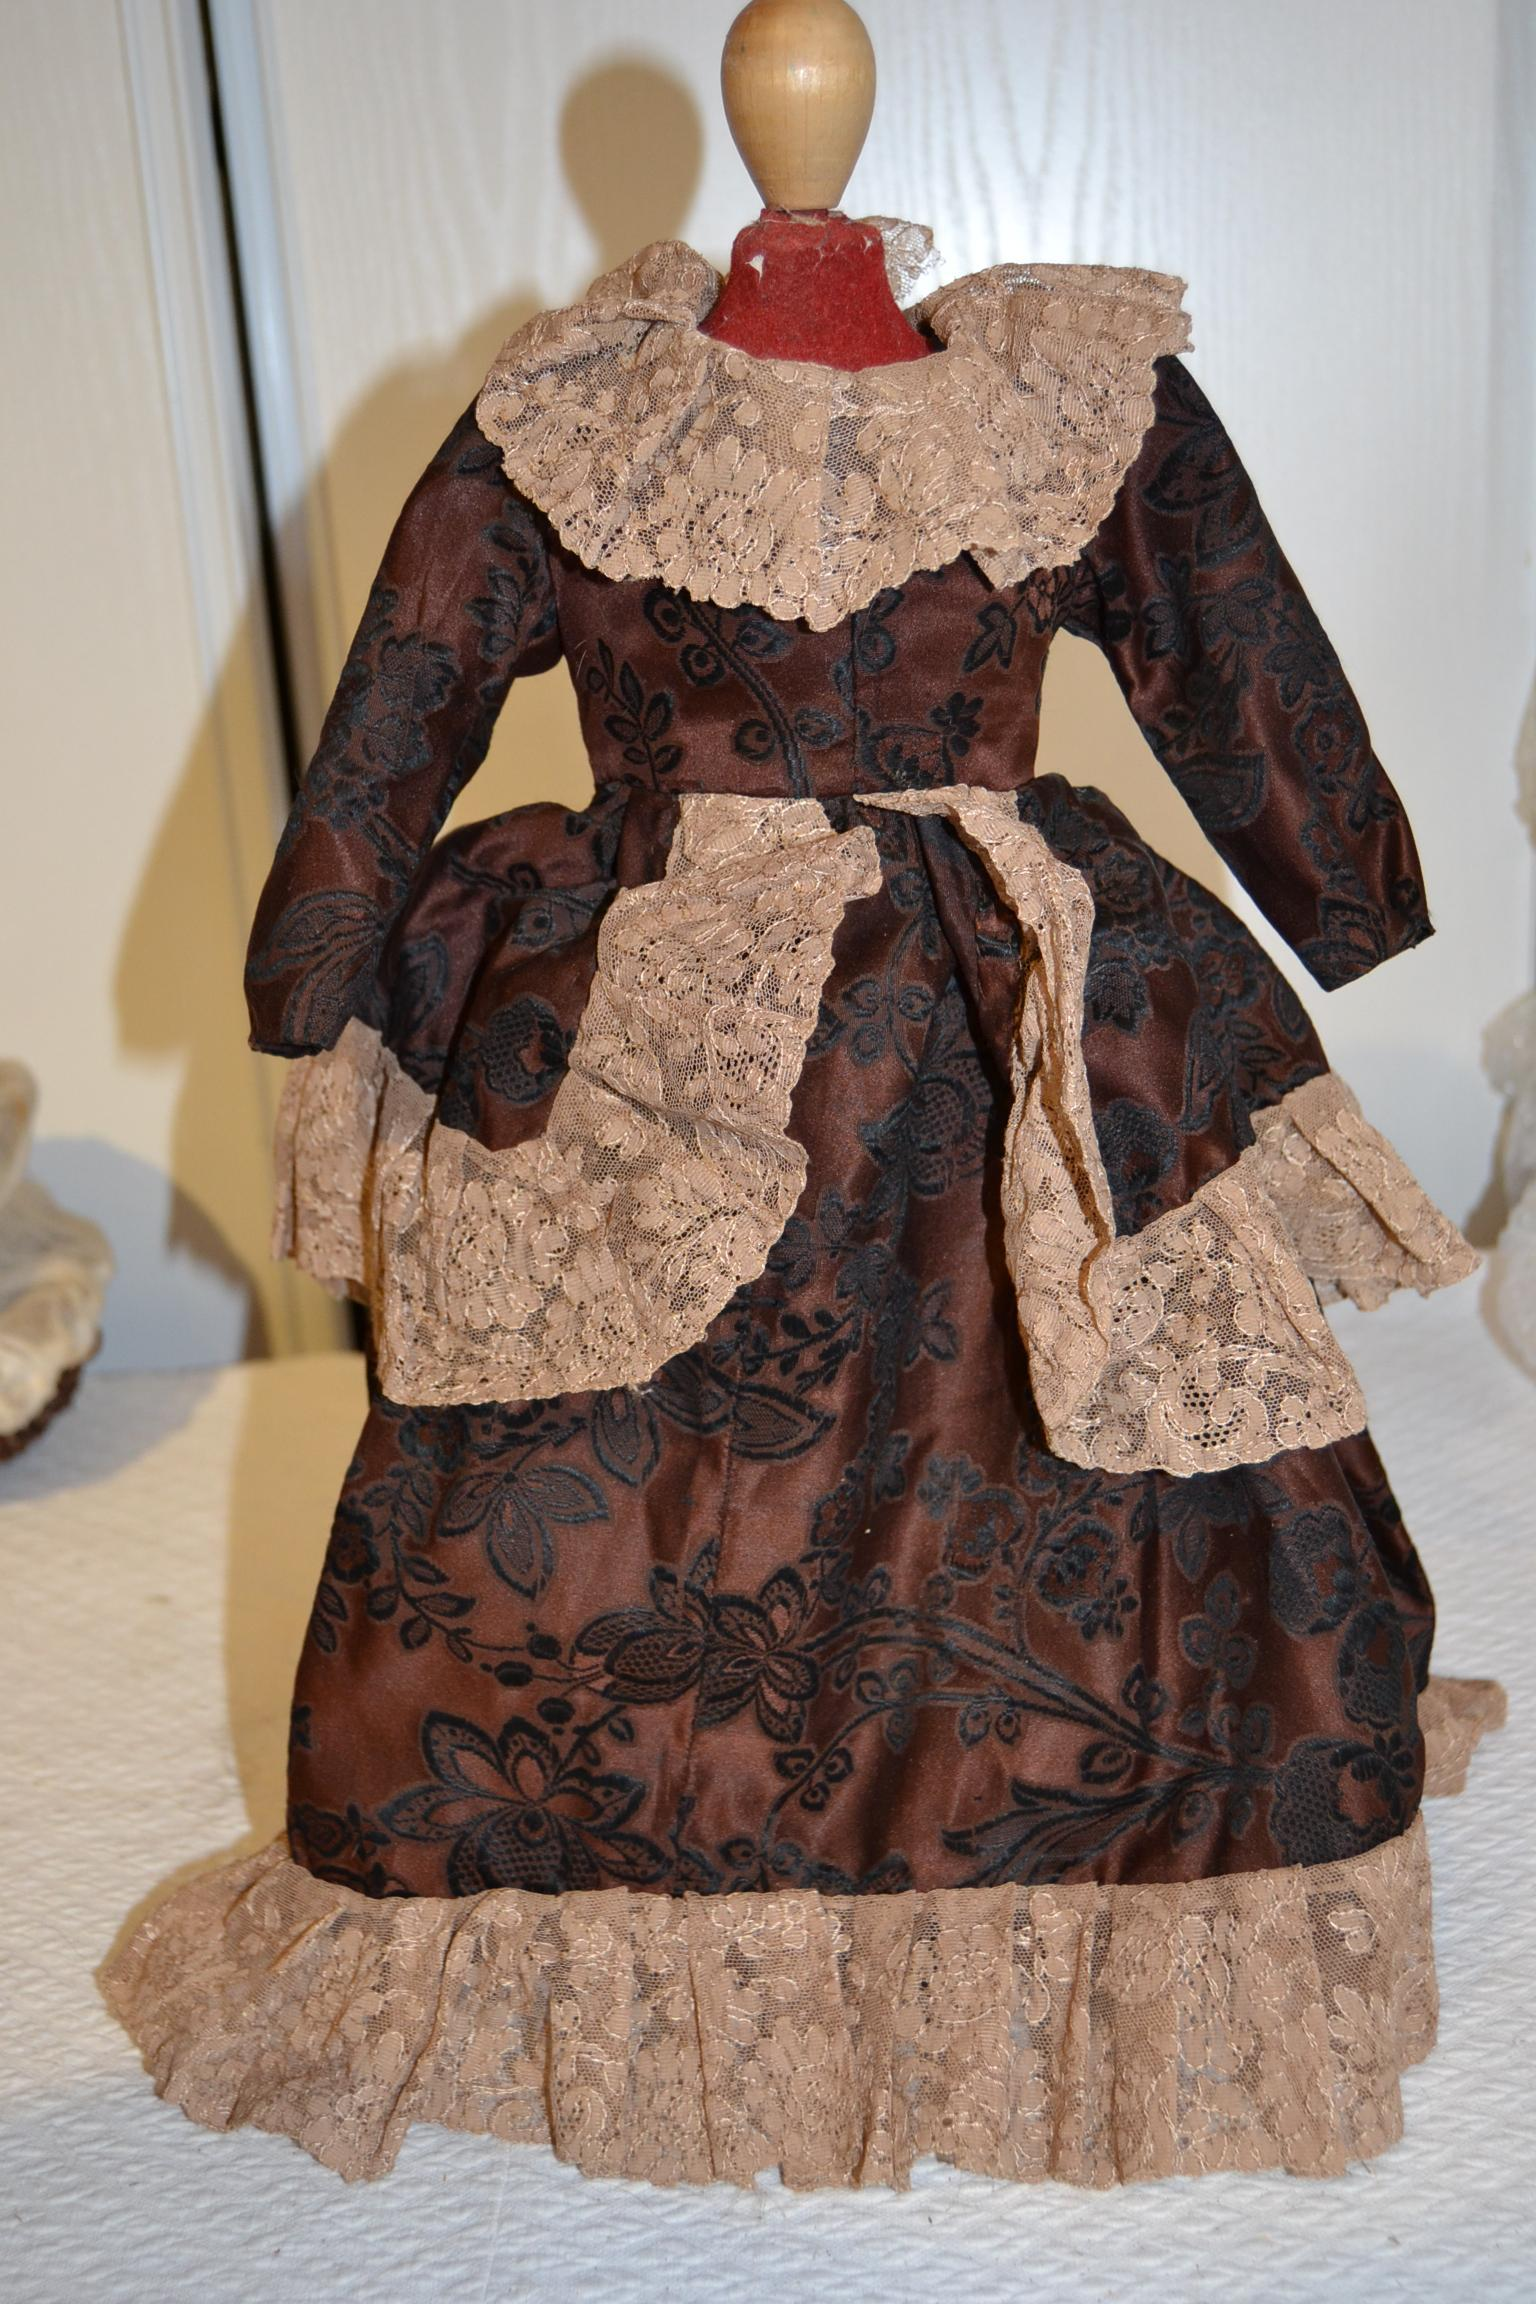 Lovely vintage dress for your doll